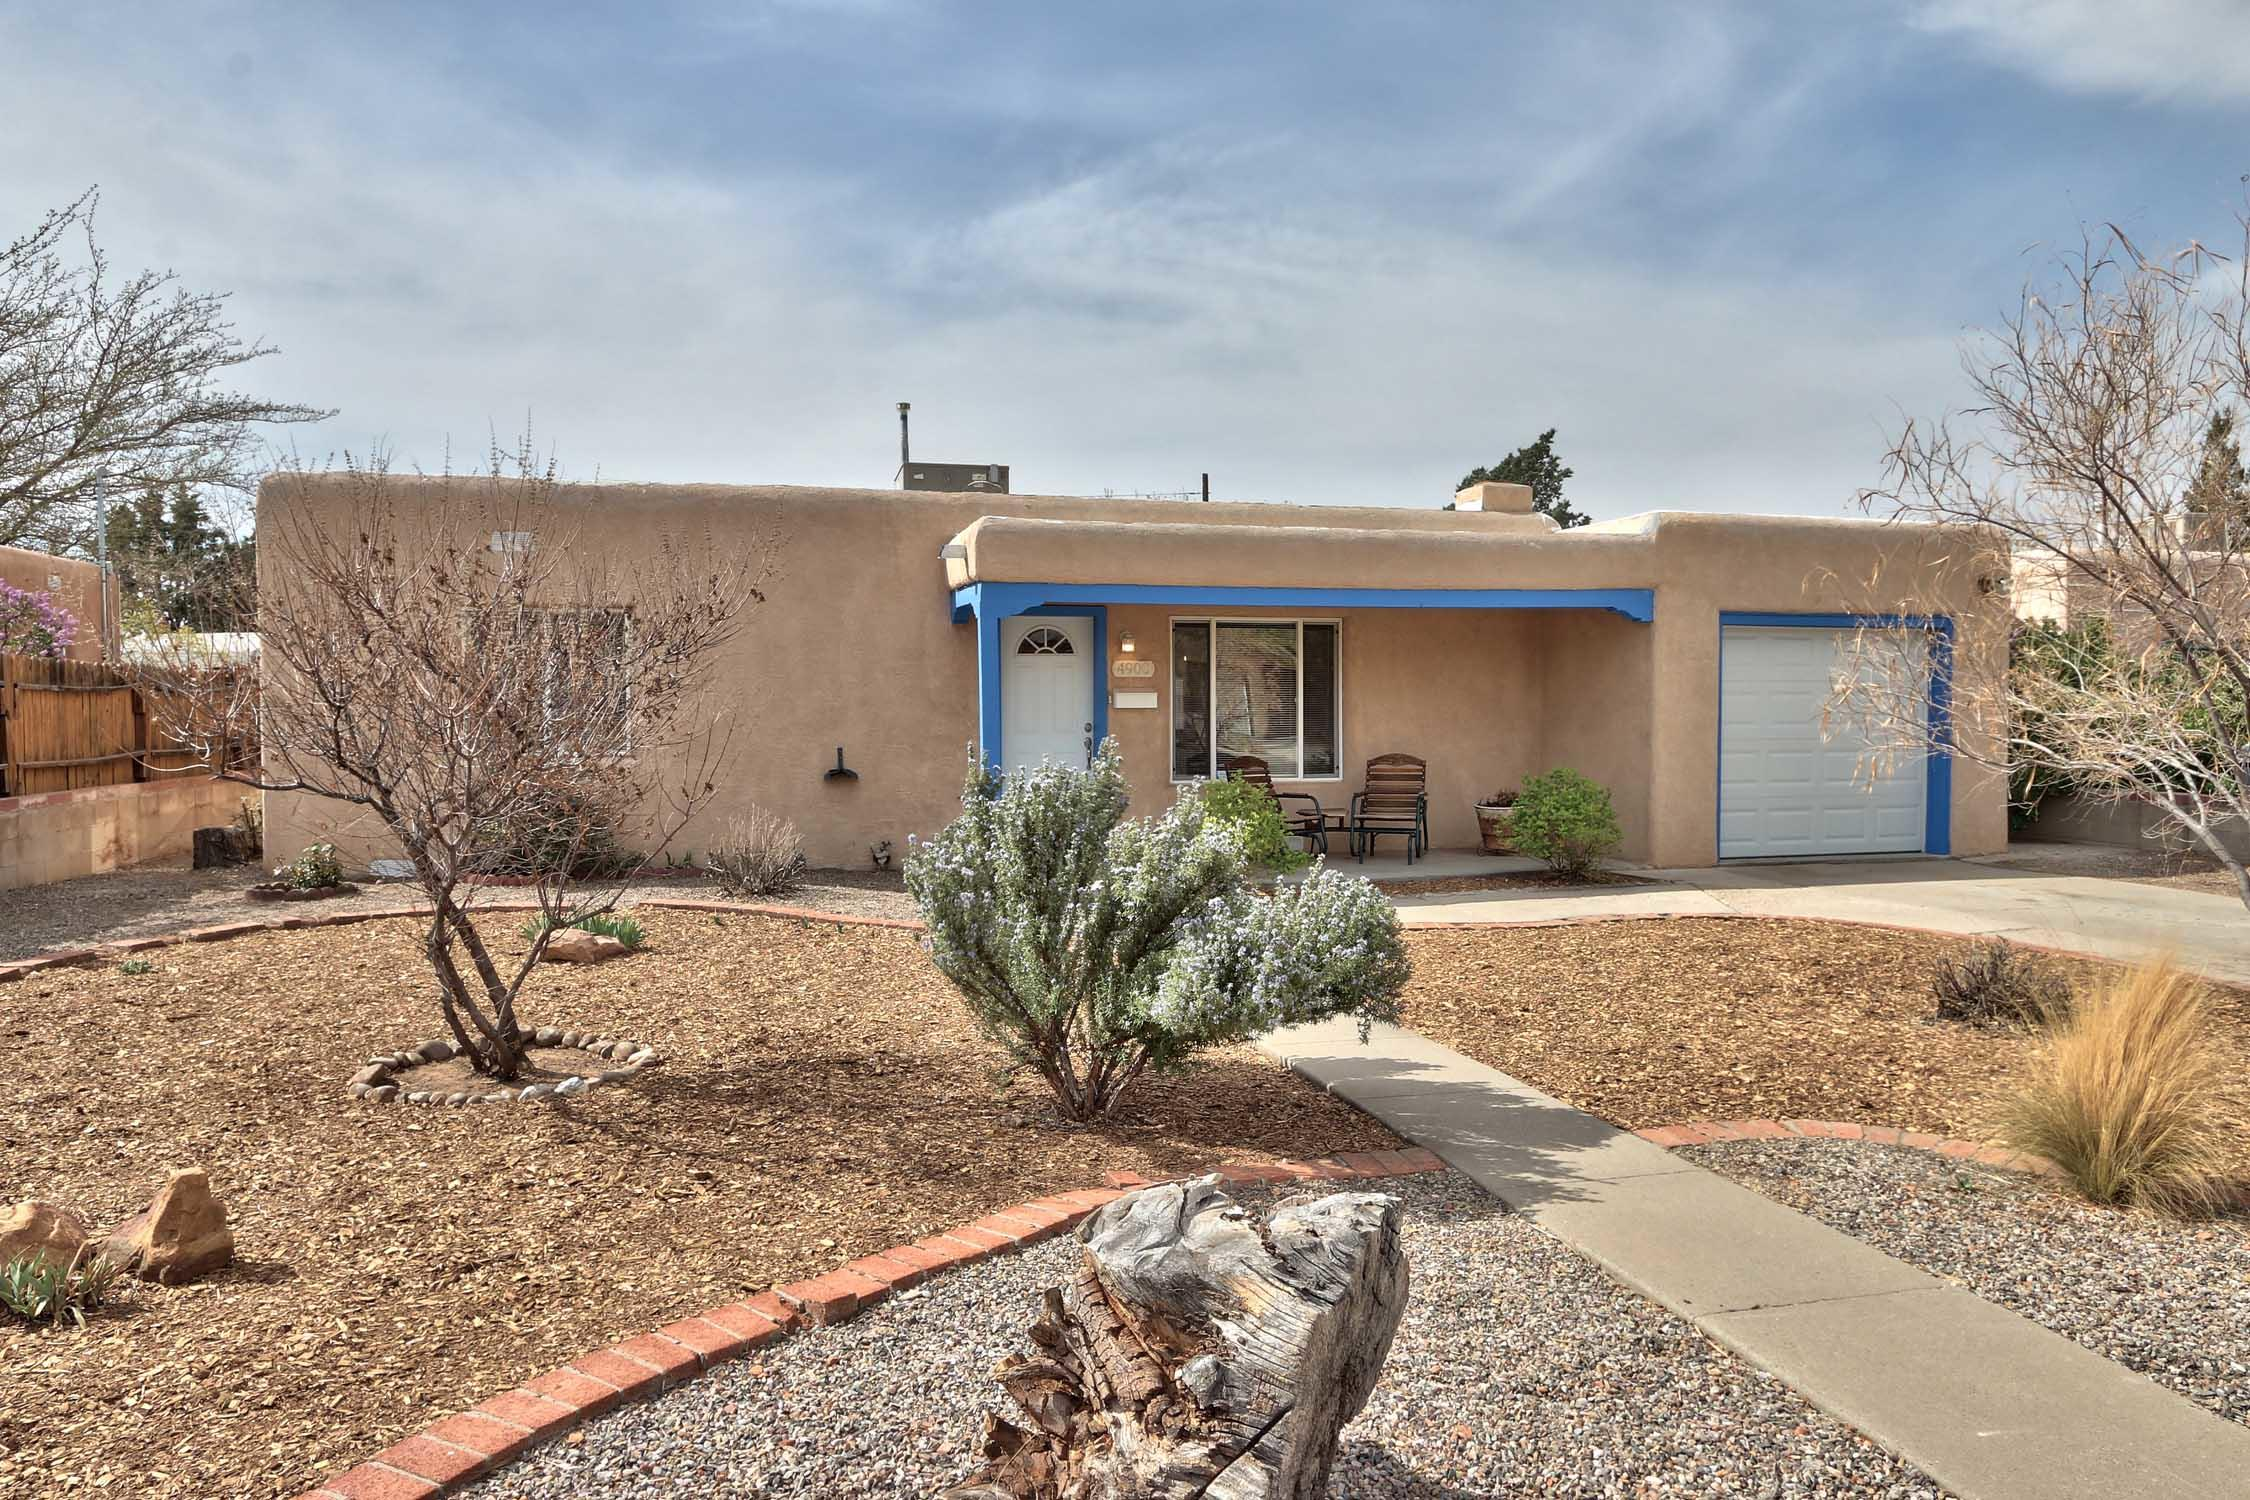 Darling UNM area home with beautiful light, open floor plan, refrigerated air, large den and hardwood floors. Kitchen has been upgraded with granite countertops and stainless steel appliances. Large master sits in separate wing from 2 additional bedrooms and has French doors that open to ample-sized backyard w/ raised beds, perfect for entertaining, gardening or relaxing. Large storage shed in backyard  for gardening tools & implements. Master bath features walk-in shower and updated counter tops and double sinks. Fresh landscaping and new fencing add to the ambience. Ideal location, close to Altura Park and all amenities, including shopping, UNM facilities, hospital, Nob Hill and Kirtland. A true gem in the middle of the city!